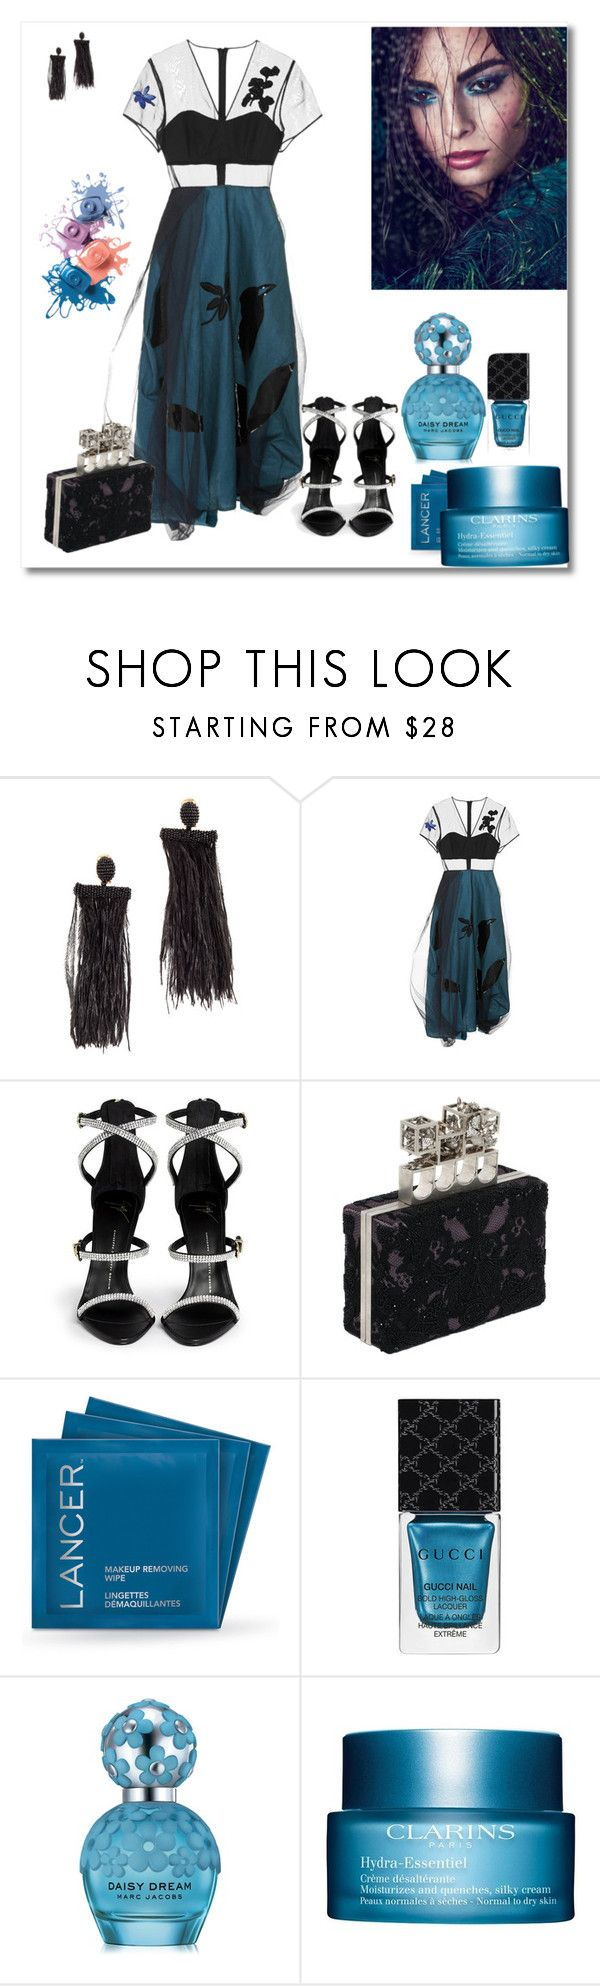 """""""Senza titolo #511"""" by robbys73 ❤ liked on Polyvore featuring Oscar de la Renta, Jonathan Saunders, Giuseppe Zanotti, Alexander McQueen, Lancer Dermatology, Gucci, Marc Jacobs and Clarins"""